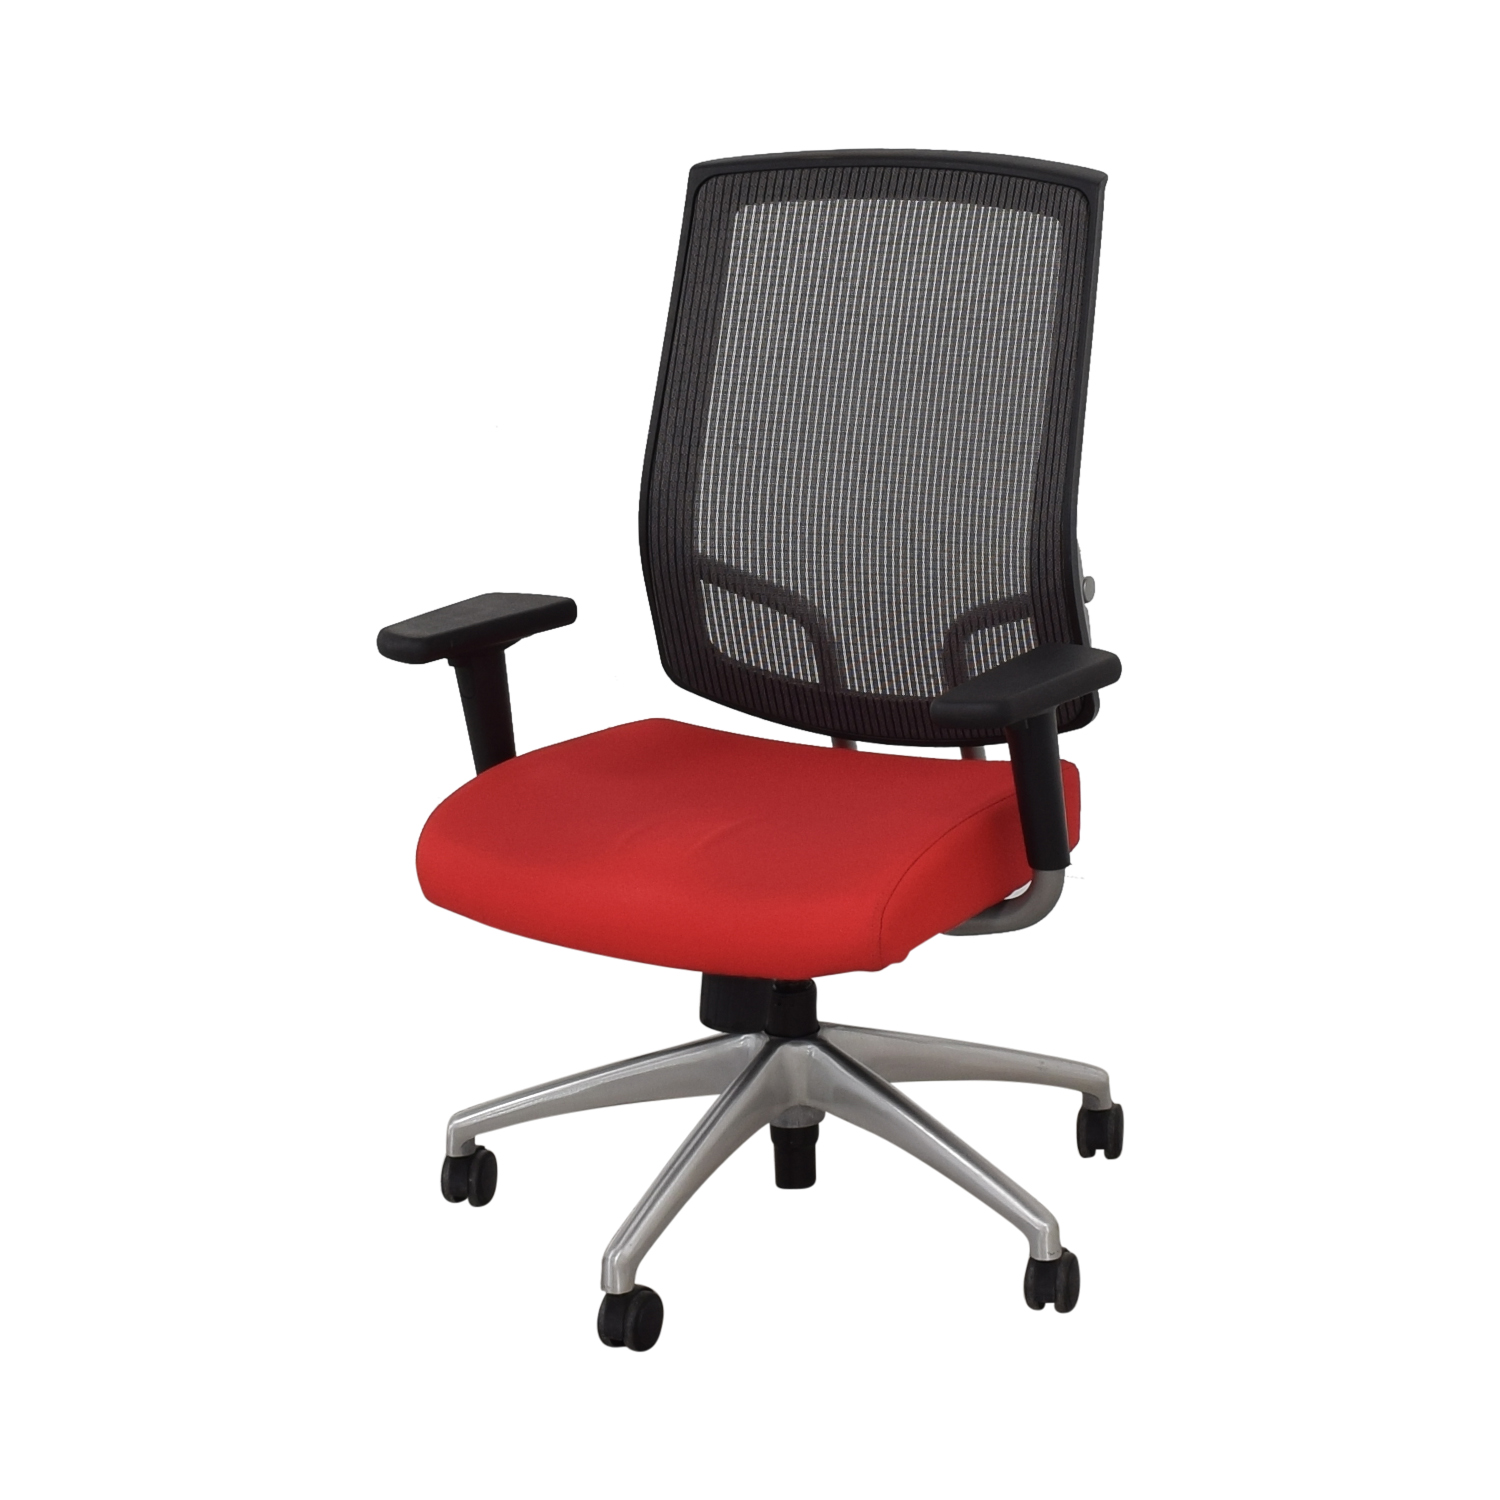 SitOnIt SitOnIt Focus High Back Office Chair on sale